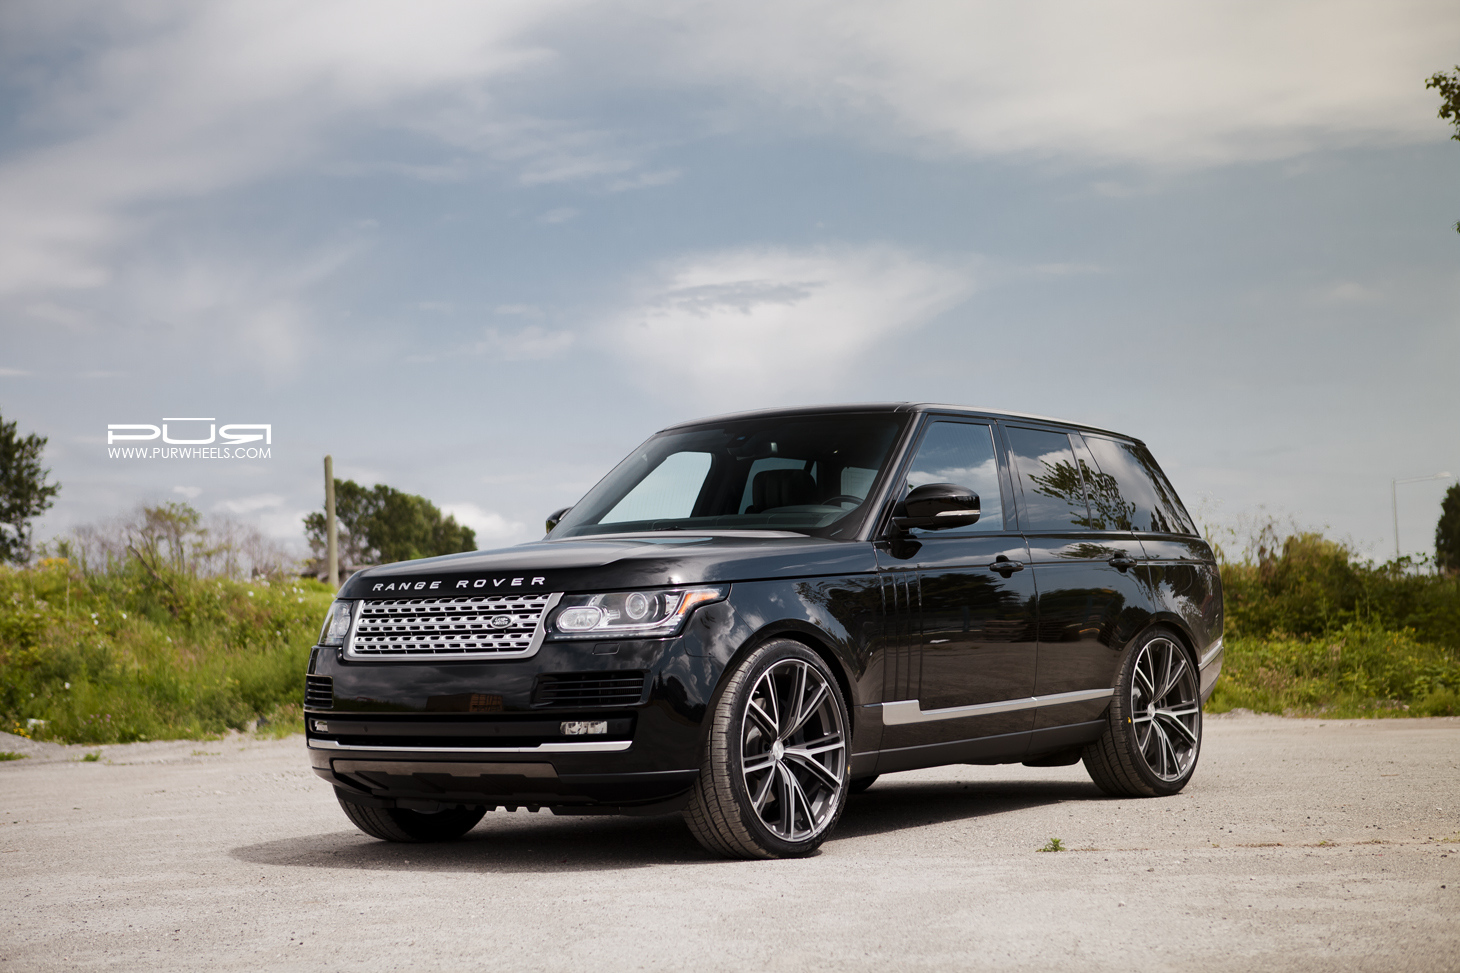 Pur Range Rover Vogue Supercharged 9ine Teamspeed Com